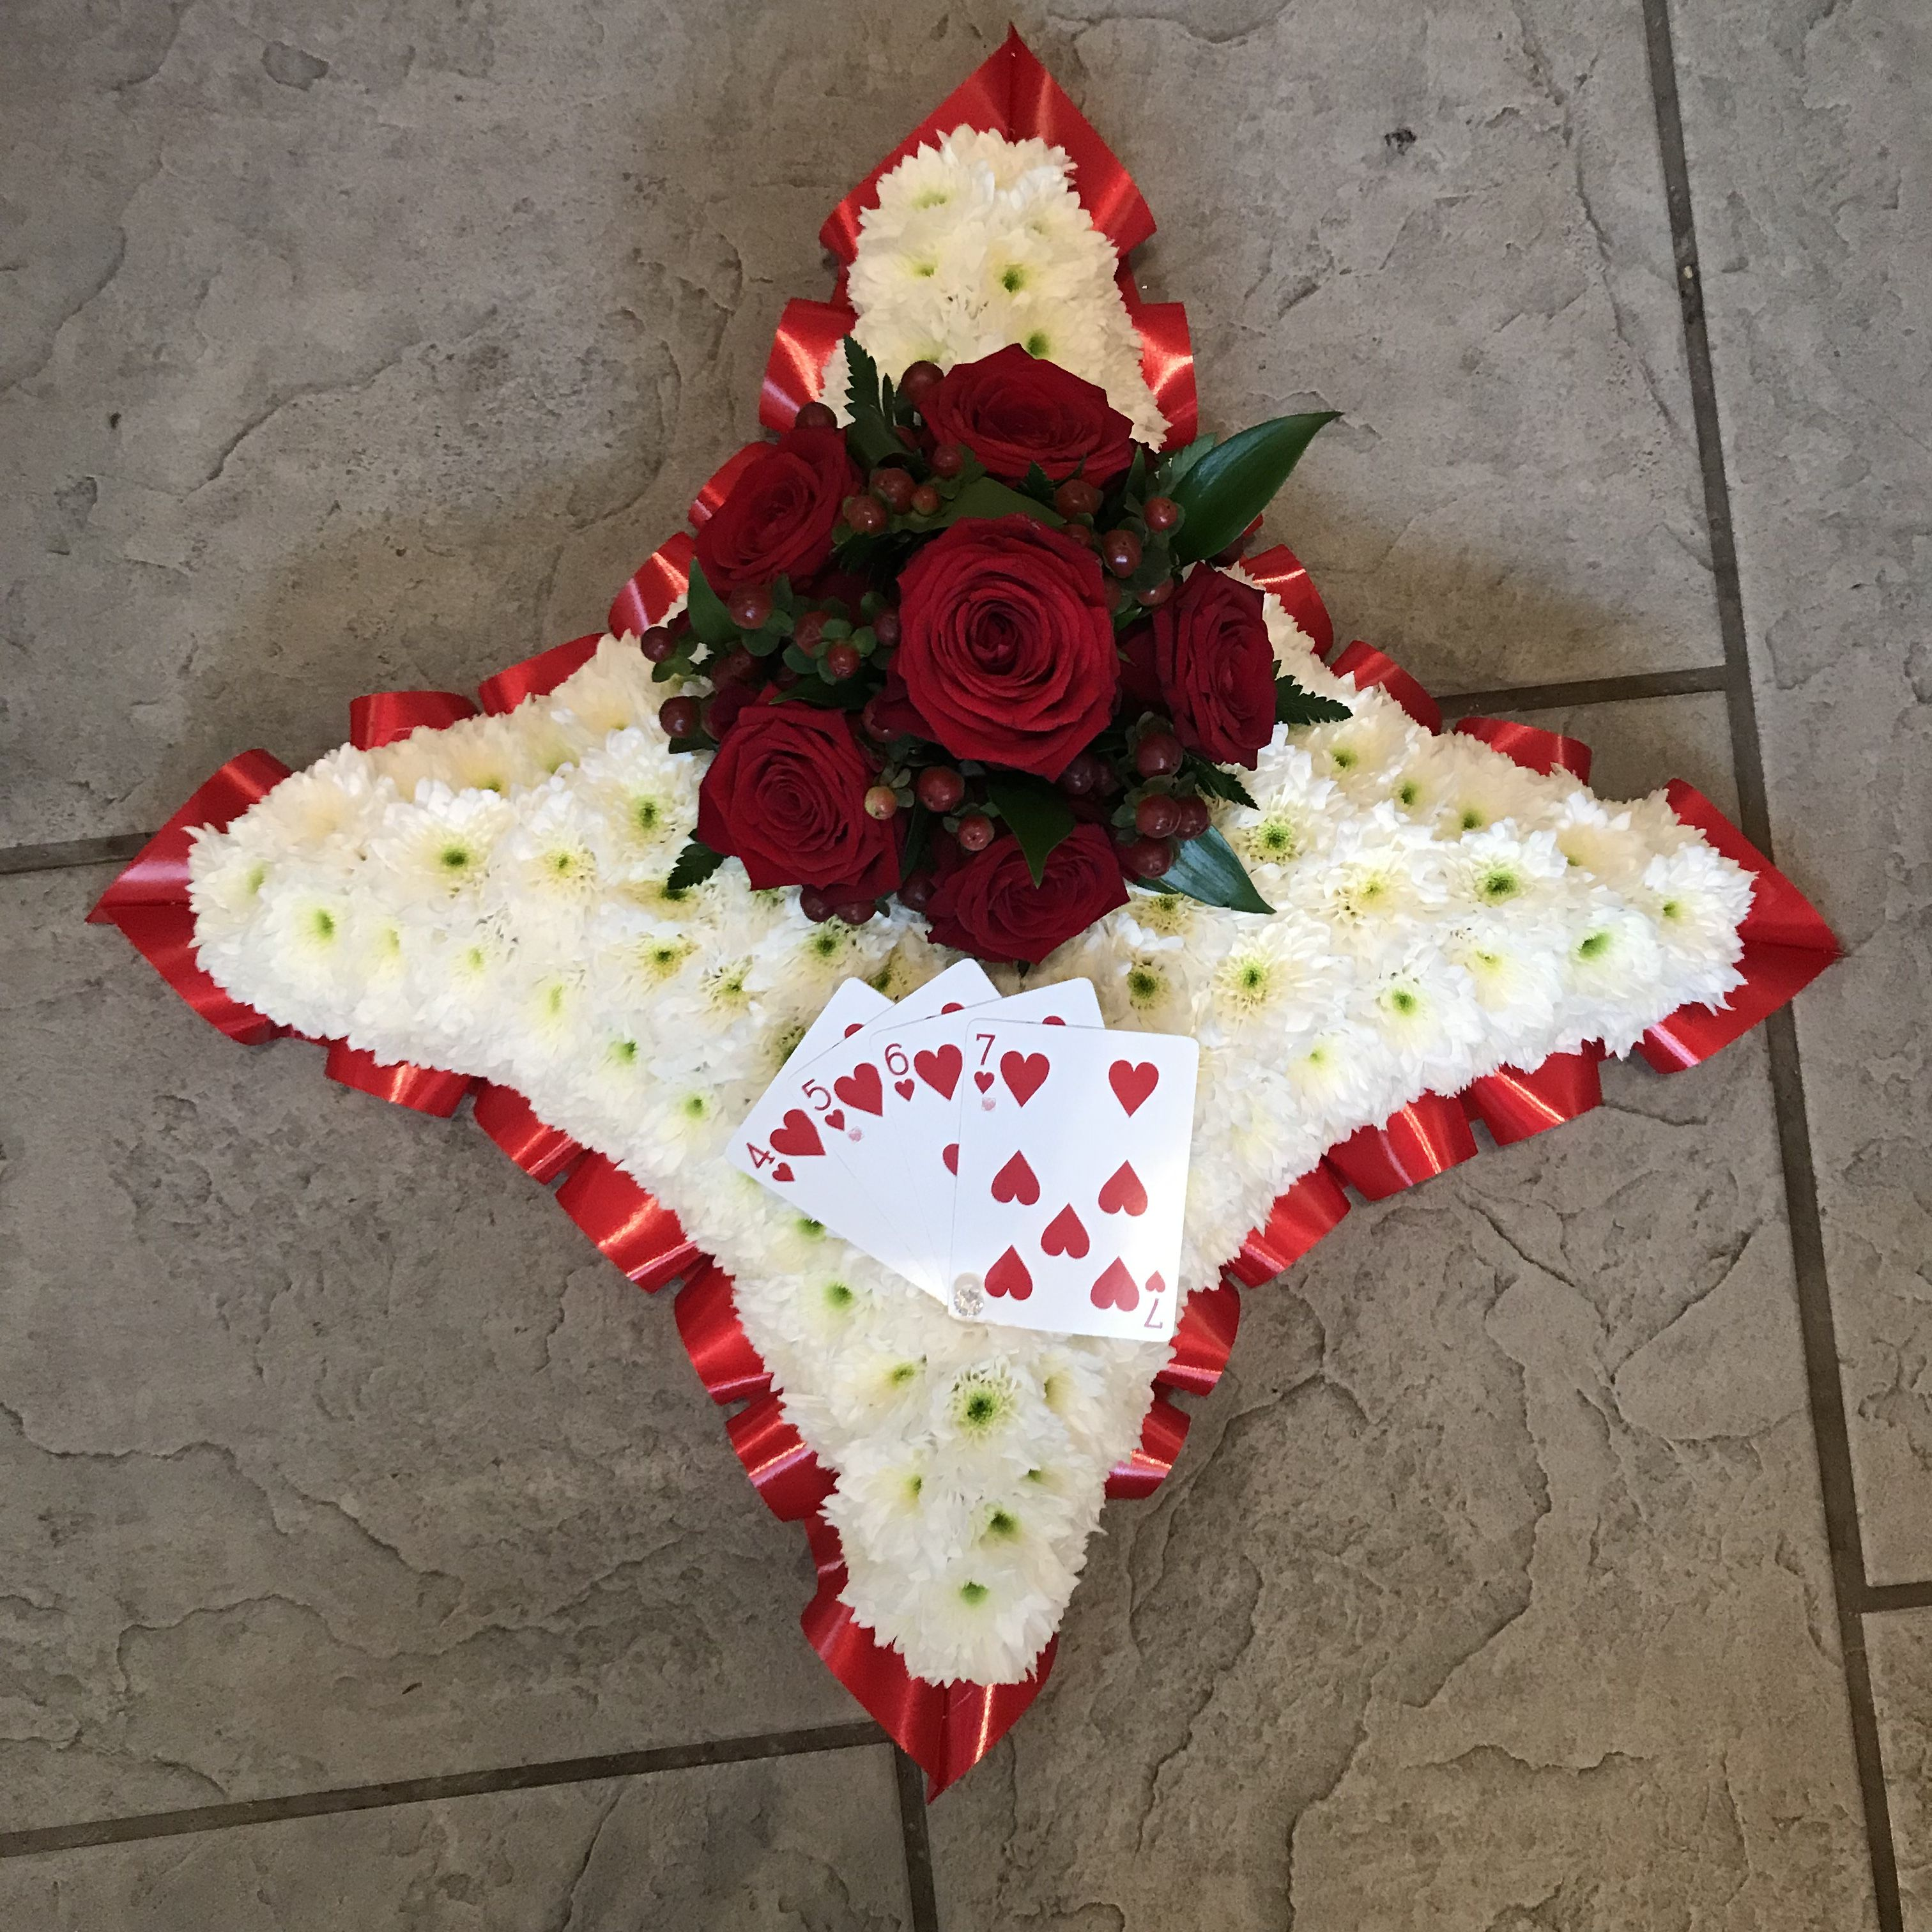 Red and white cushion design funeral tribute with red rose spray and experienced freelance florist working from a private studio in gravesend kent specialising in fresh flower arrangements for funerals and weddings offering izmirmasajfo Choice Image